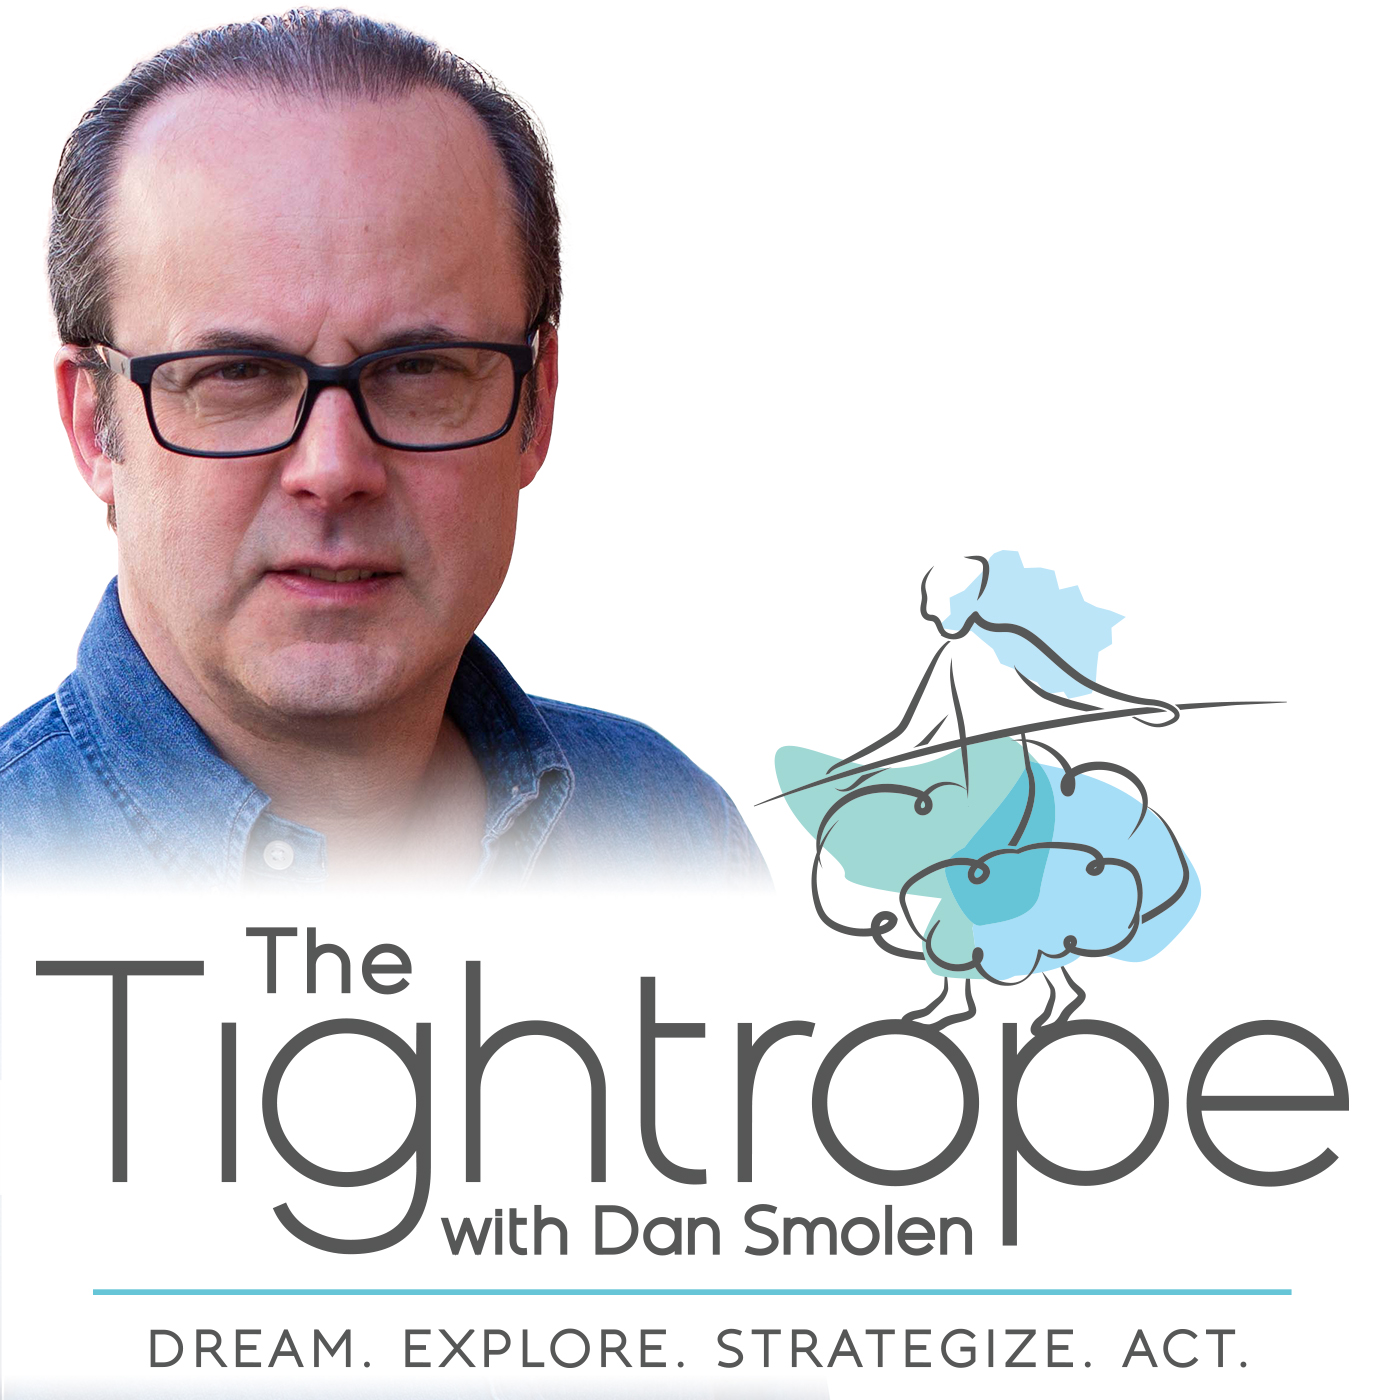 The Tightrope with Dan Smolen